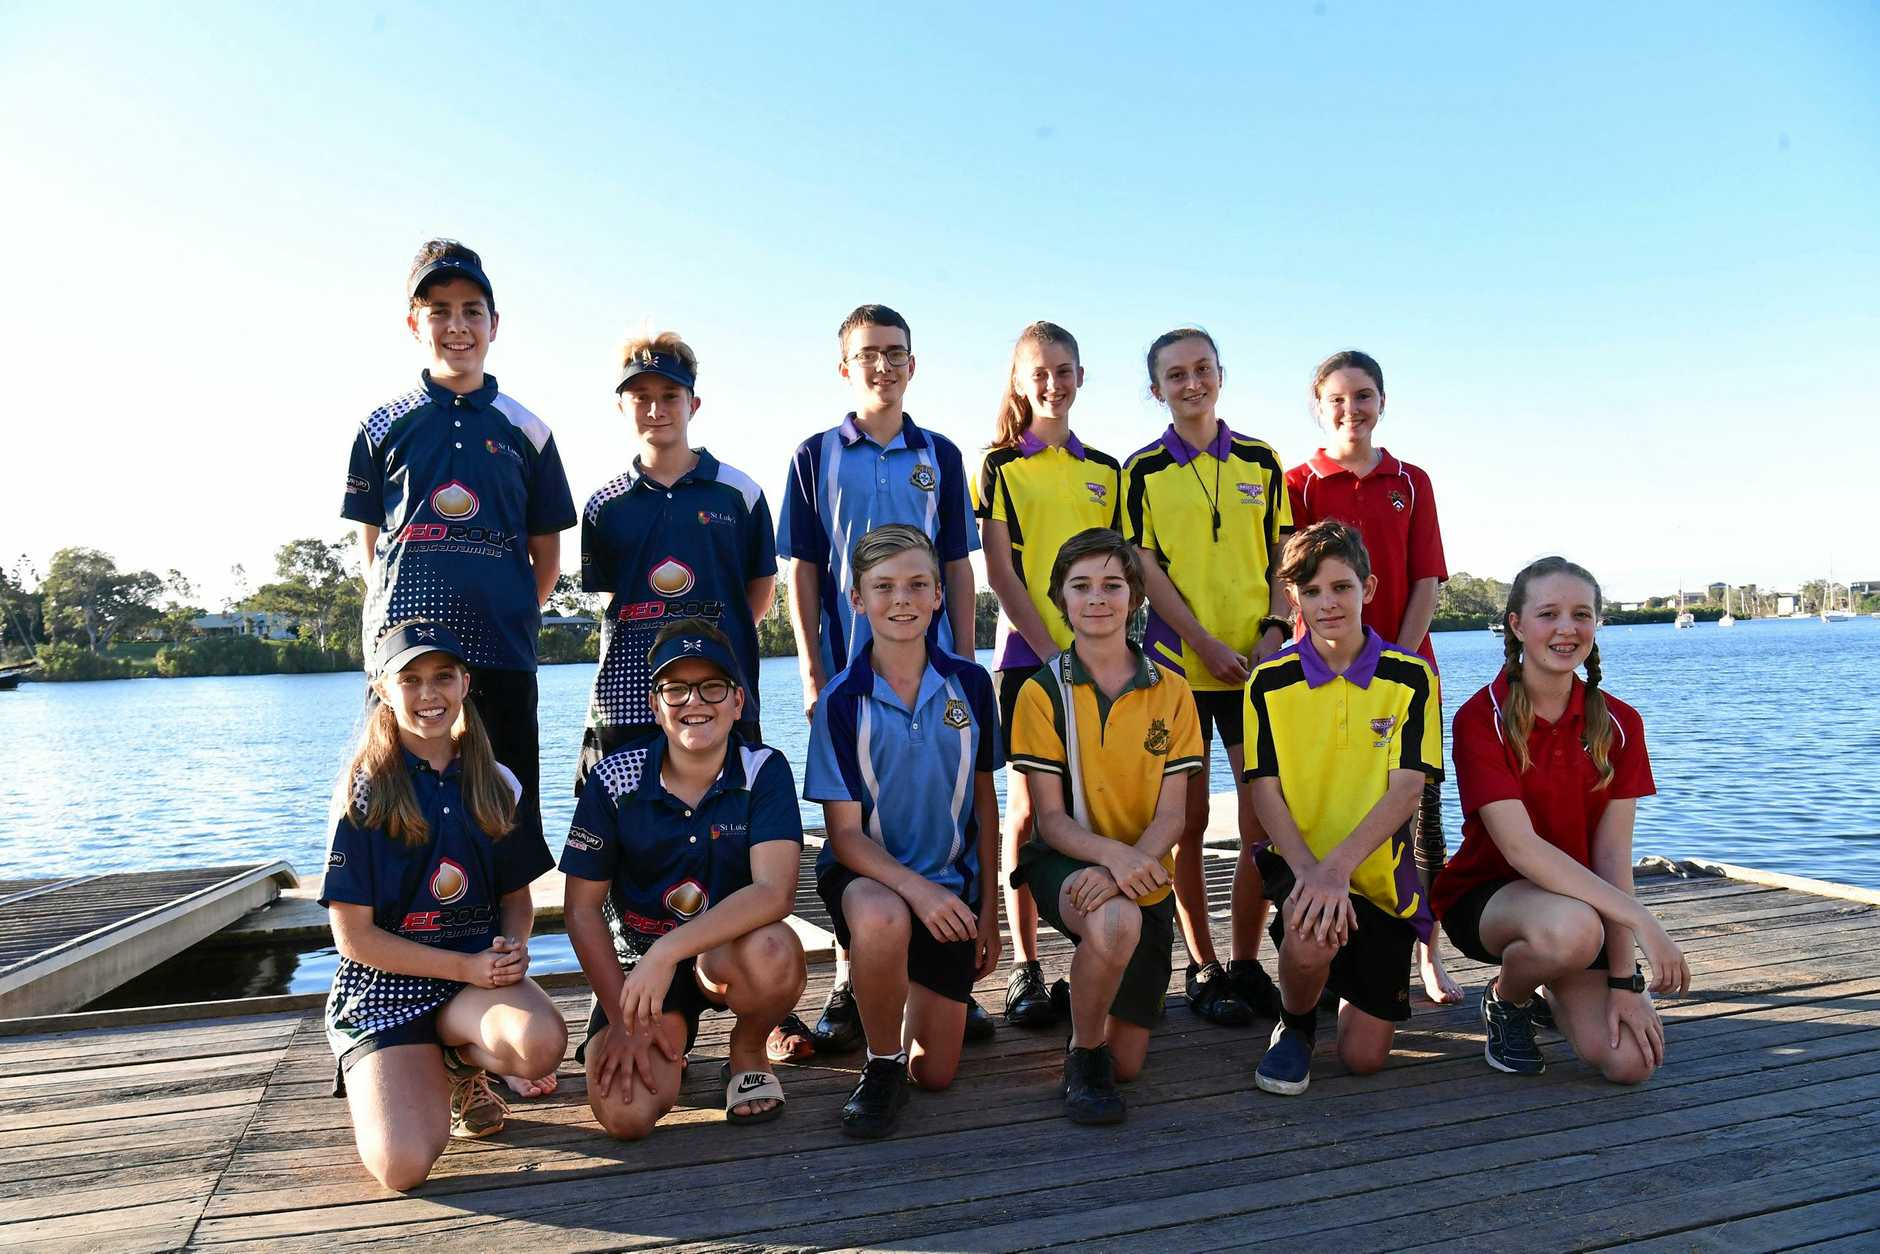 NEW GENERATION: St Luke students Lucas Rao (top left) and Henry Hirst with Bundaberg State High School student Thomas Baker, Bundaberg North State High School students Kasey Houston and Marney Blair and Shalom College's Lily Fenton are among the new rowers competing in Head of the River. They are joined by St Luke's Gabby Miners (front left), Olly Meehan, Bundaberg State High School's David McCord, Gin Gin State High School's Nathan Davis, Bundaberg North State High School's Blake Wake and Shalom College's Jorja Mortimer.